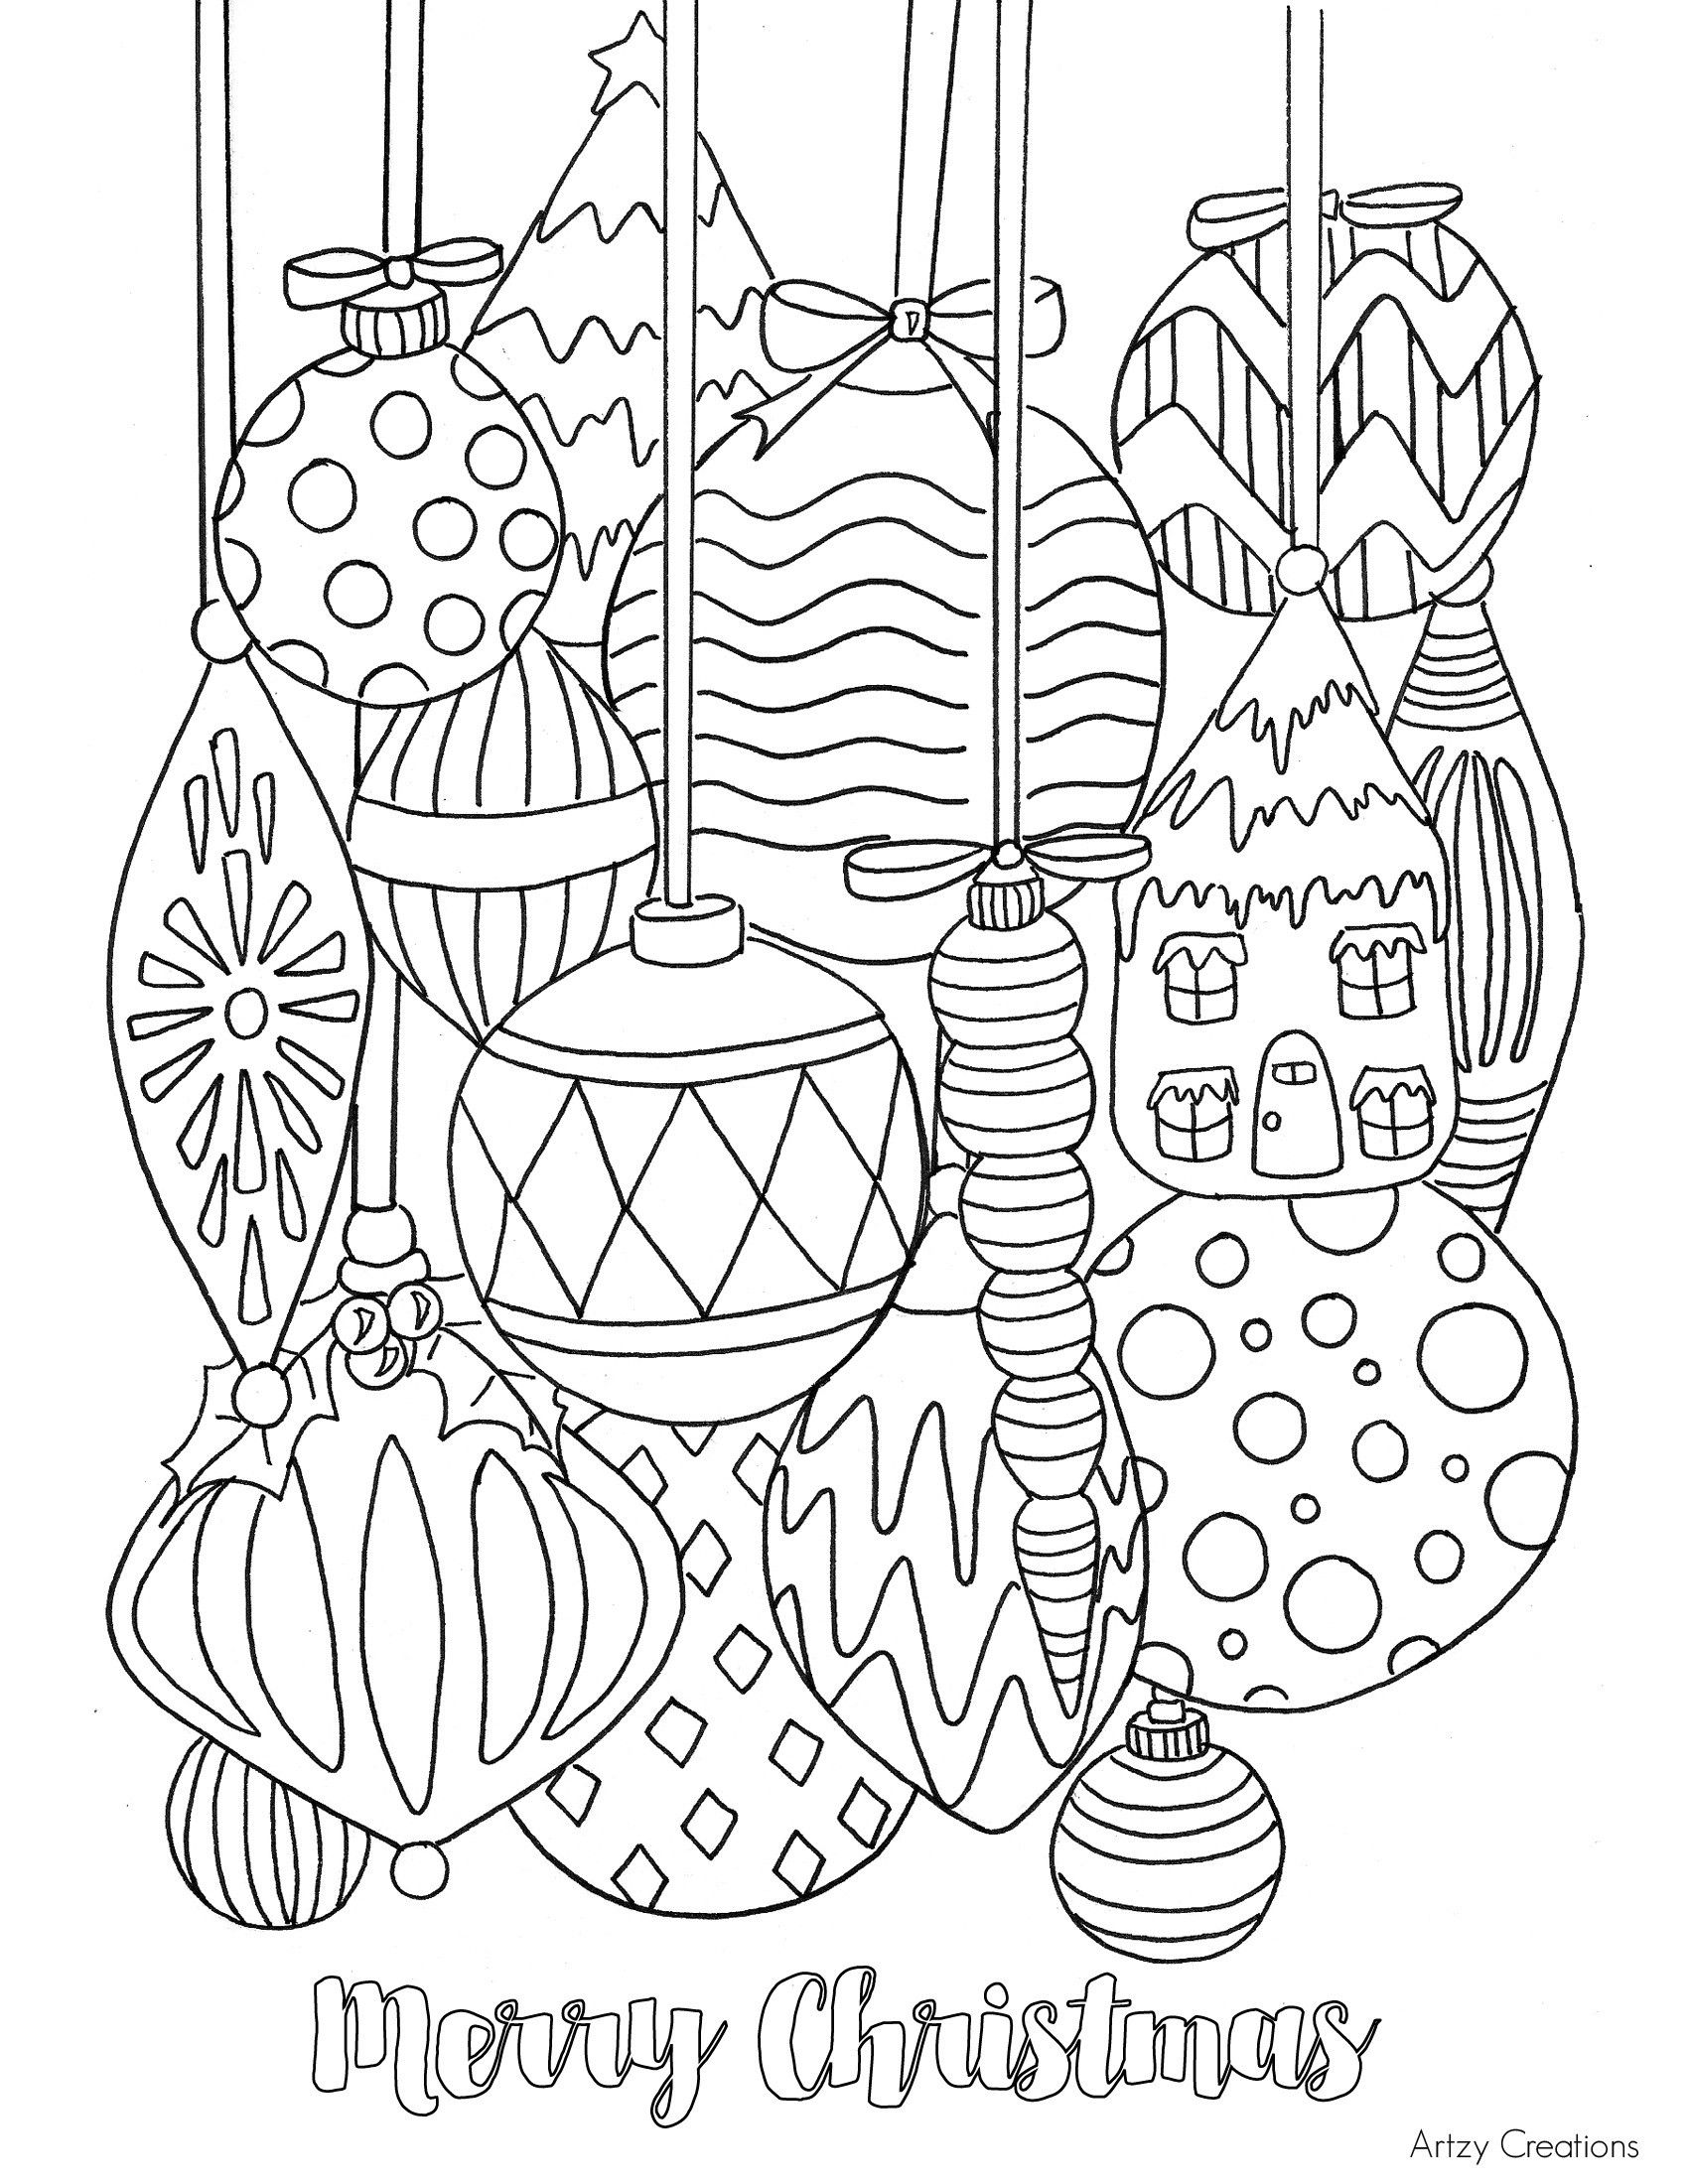 Printable christmas coloring pages for adults christmas coloring pages printable free elegant best coloring page coloring pages